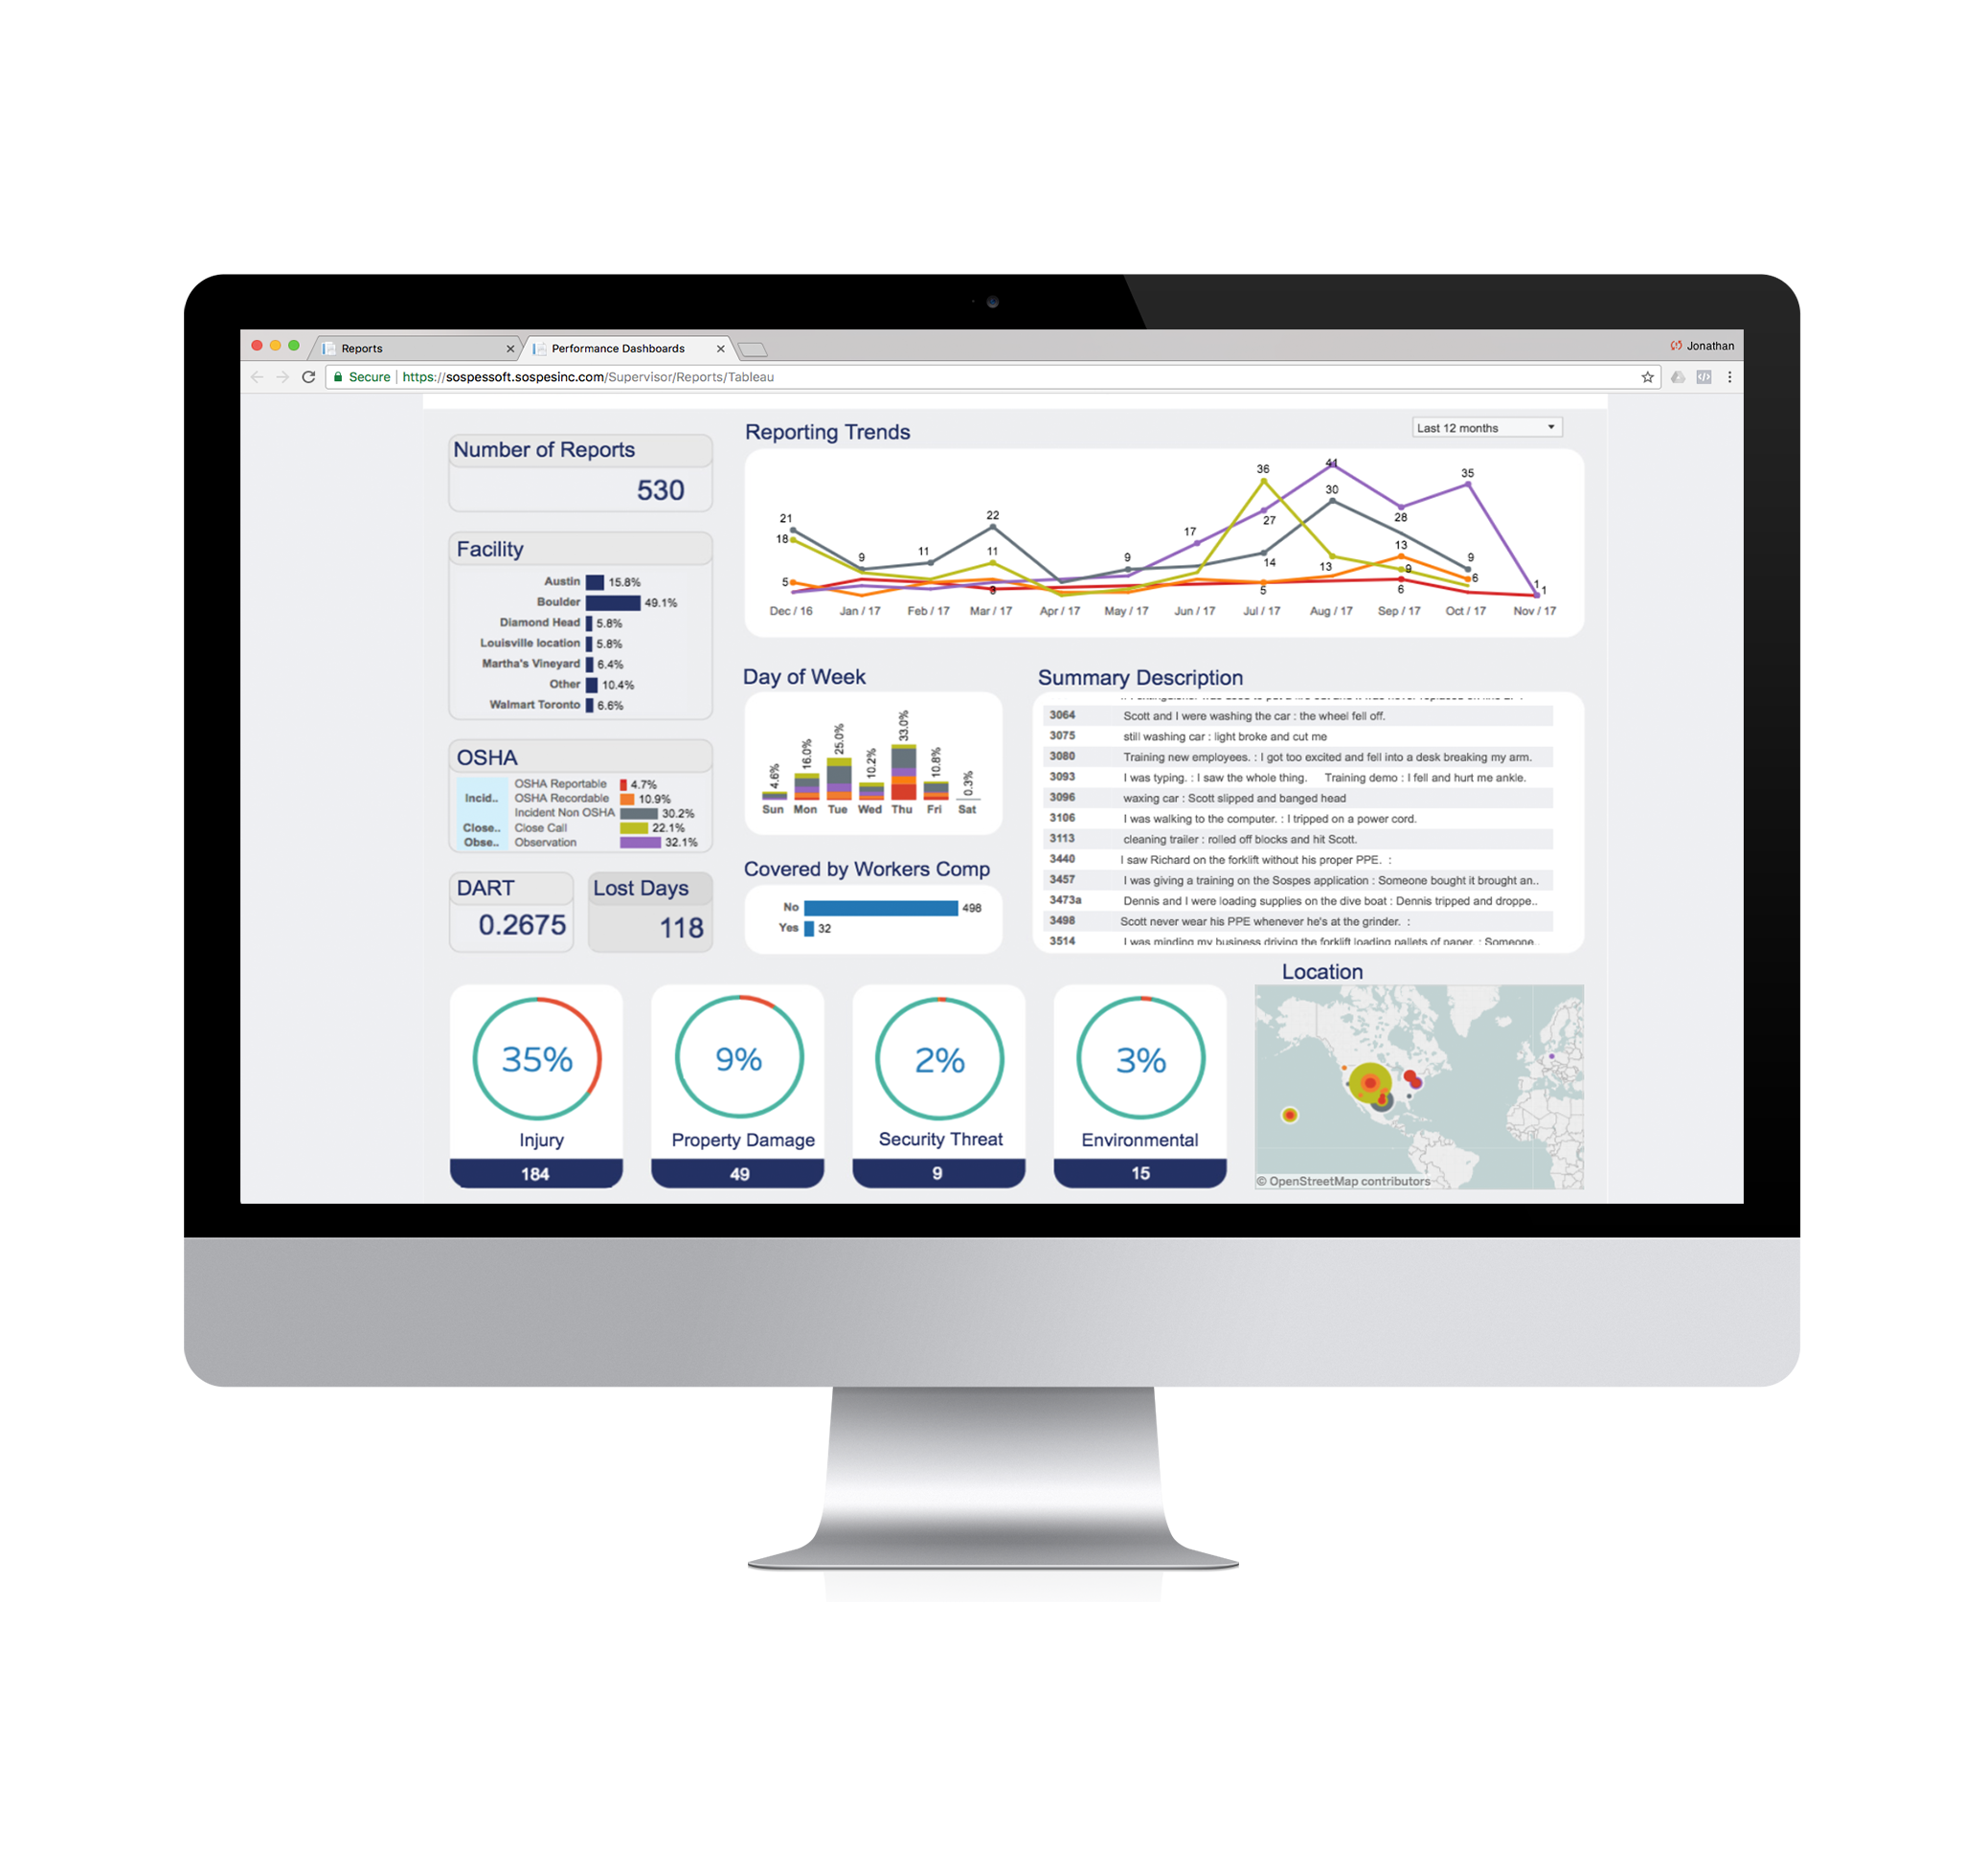 ehs data analytics software